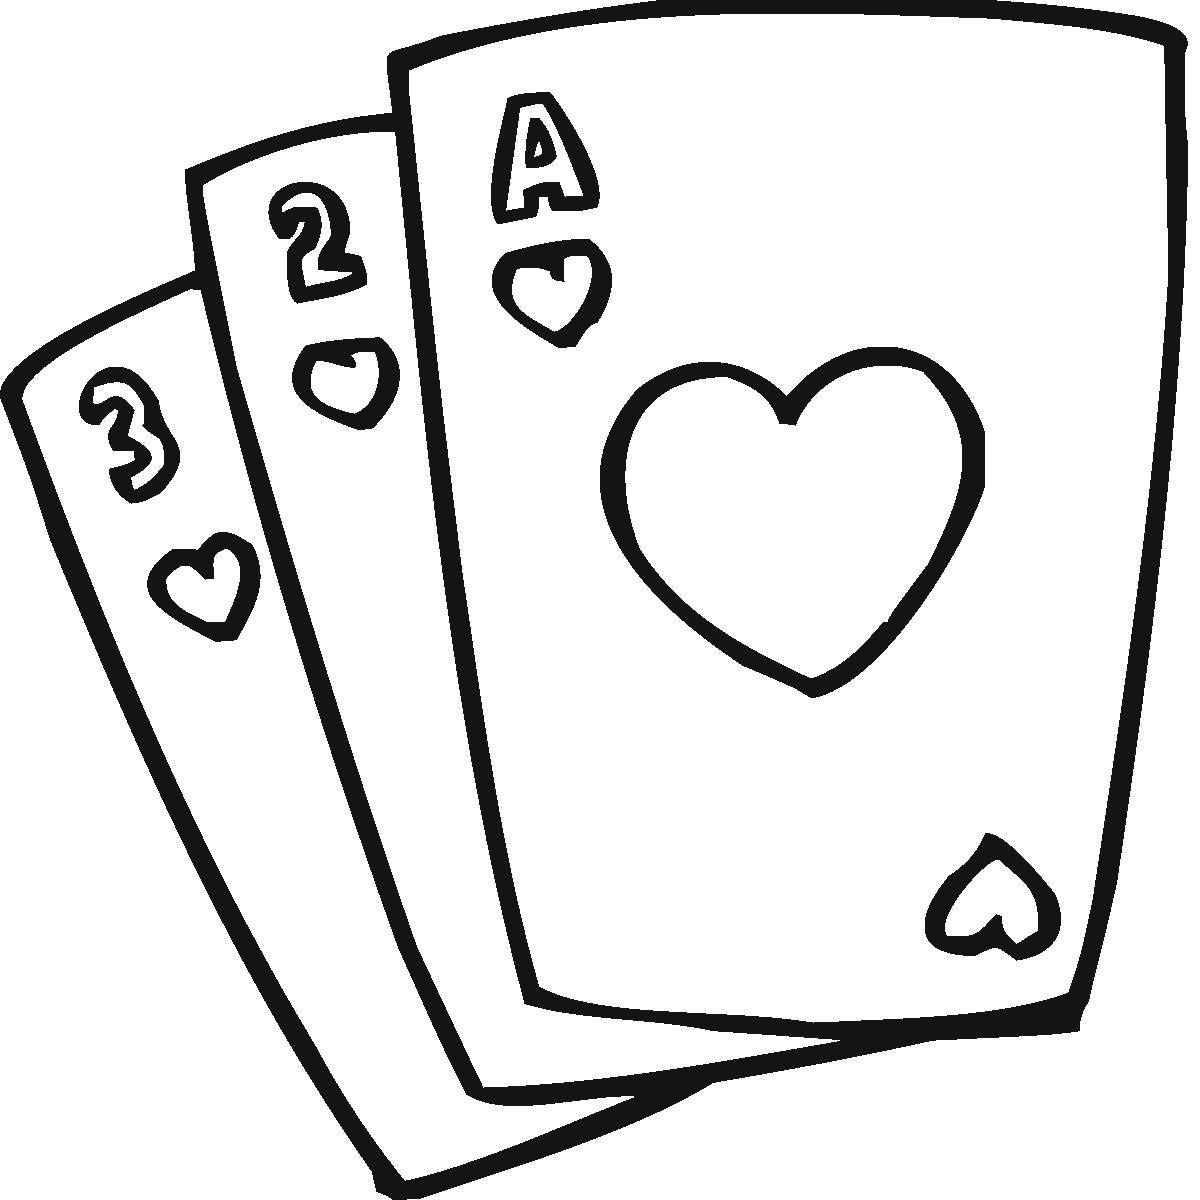 Playing Card Clip Art Cliparts Co-Playing Card Clip Art Cliparts Co-12